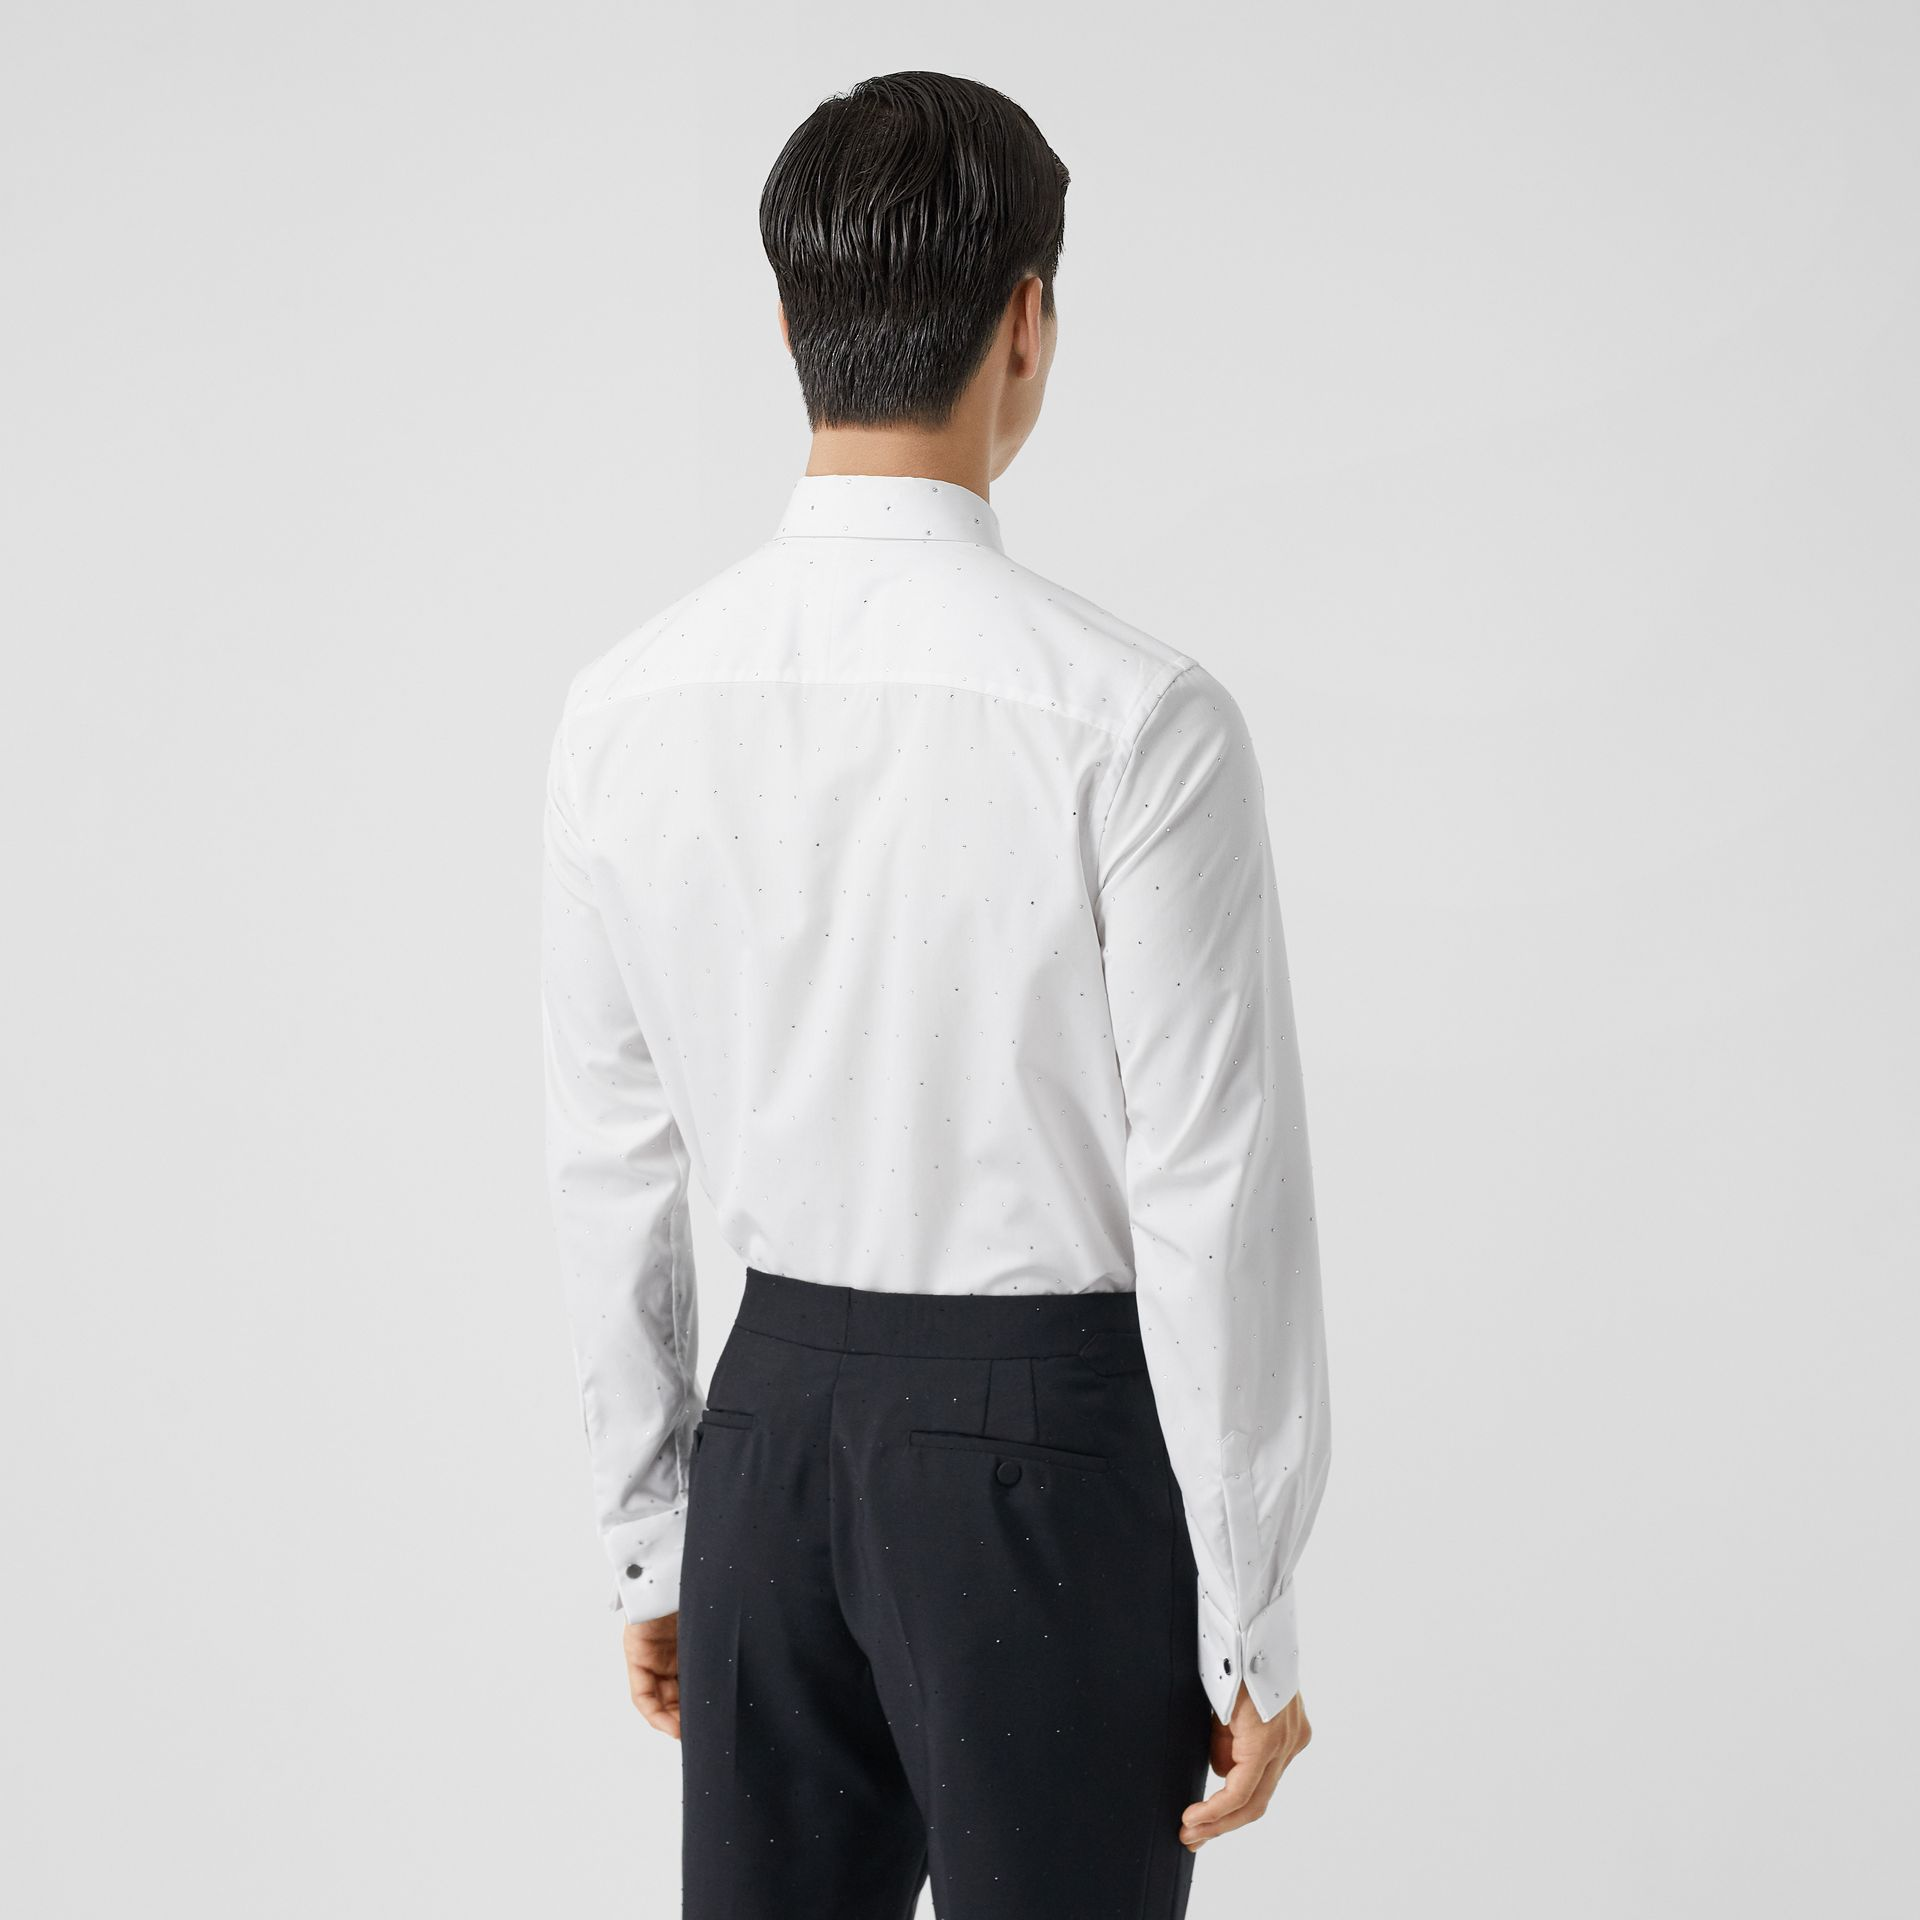 Embellished Cotton Poplin Dress Shirt in Optic White - Men | Burberry - gallery image 2